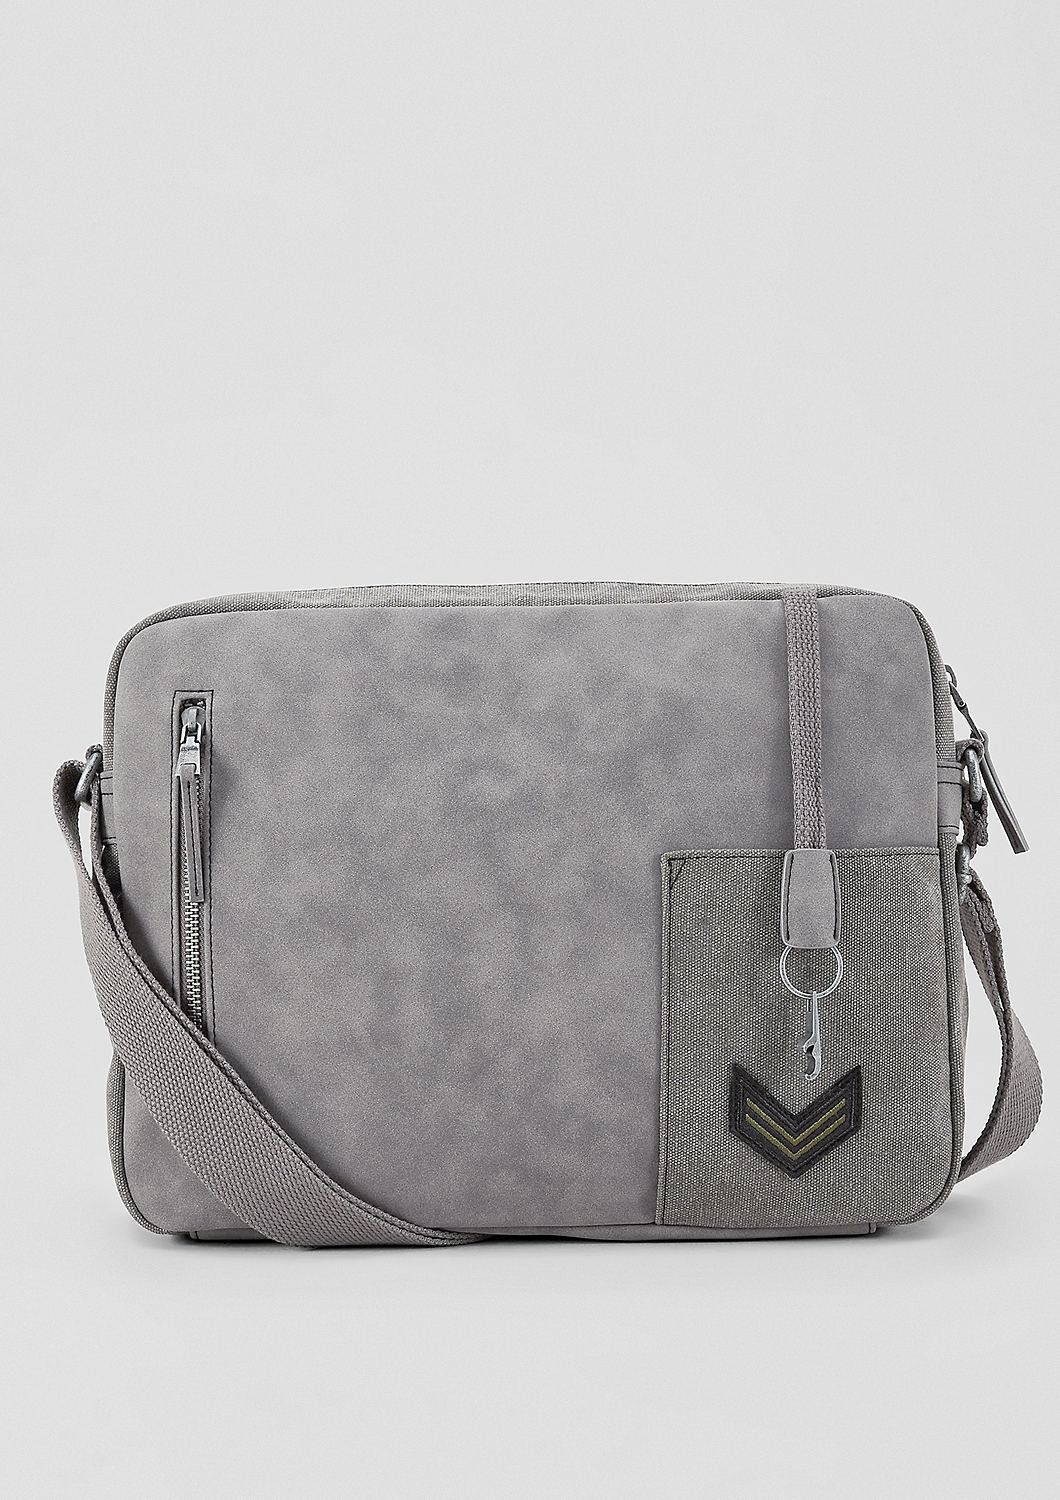 reputable site 9f1fb 3a11f Buy Small, mixed material messenger bag | s.Oliver shop